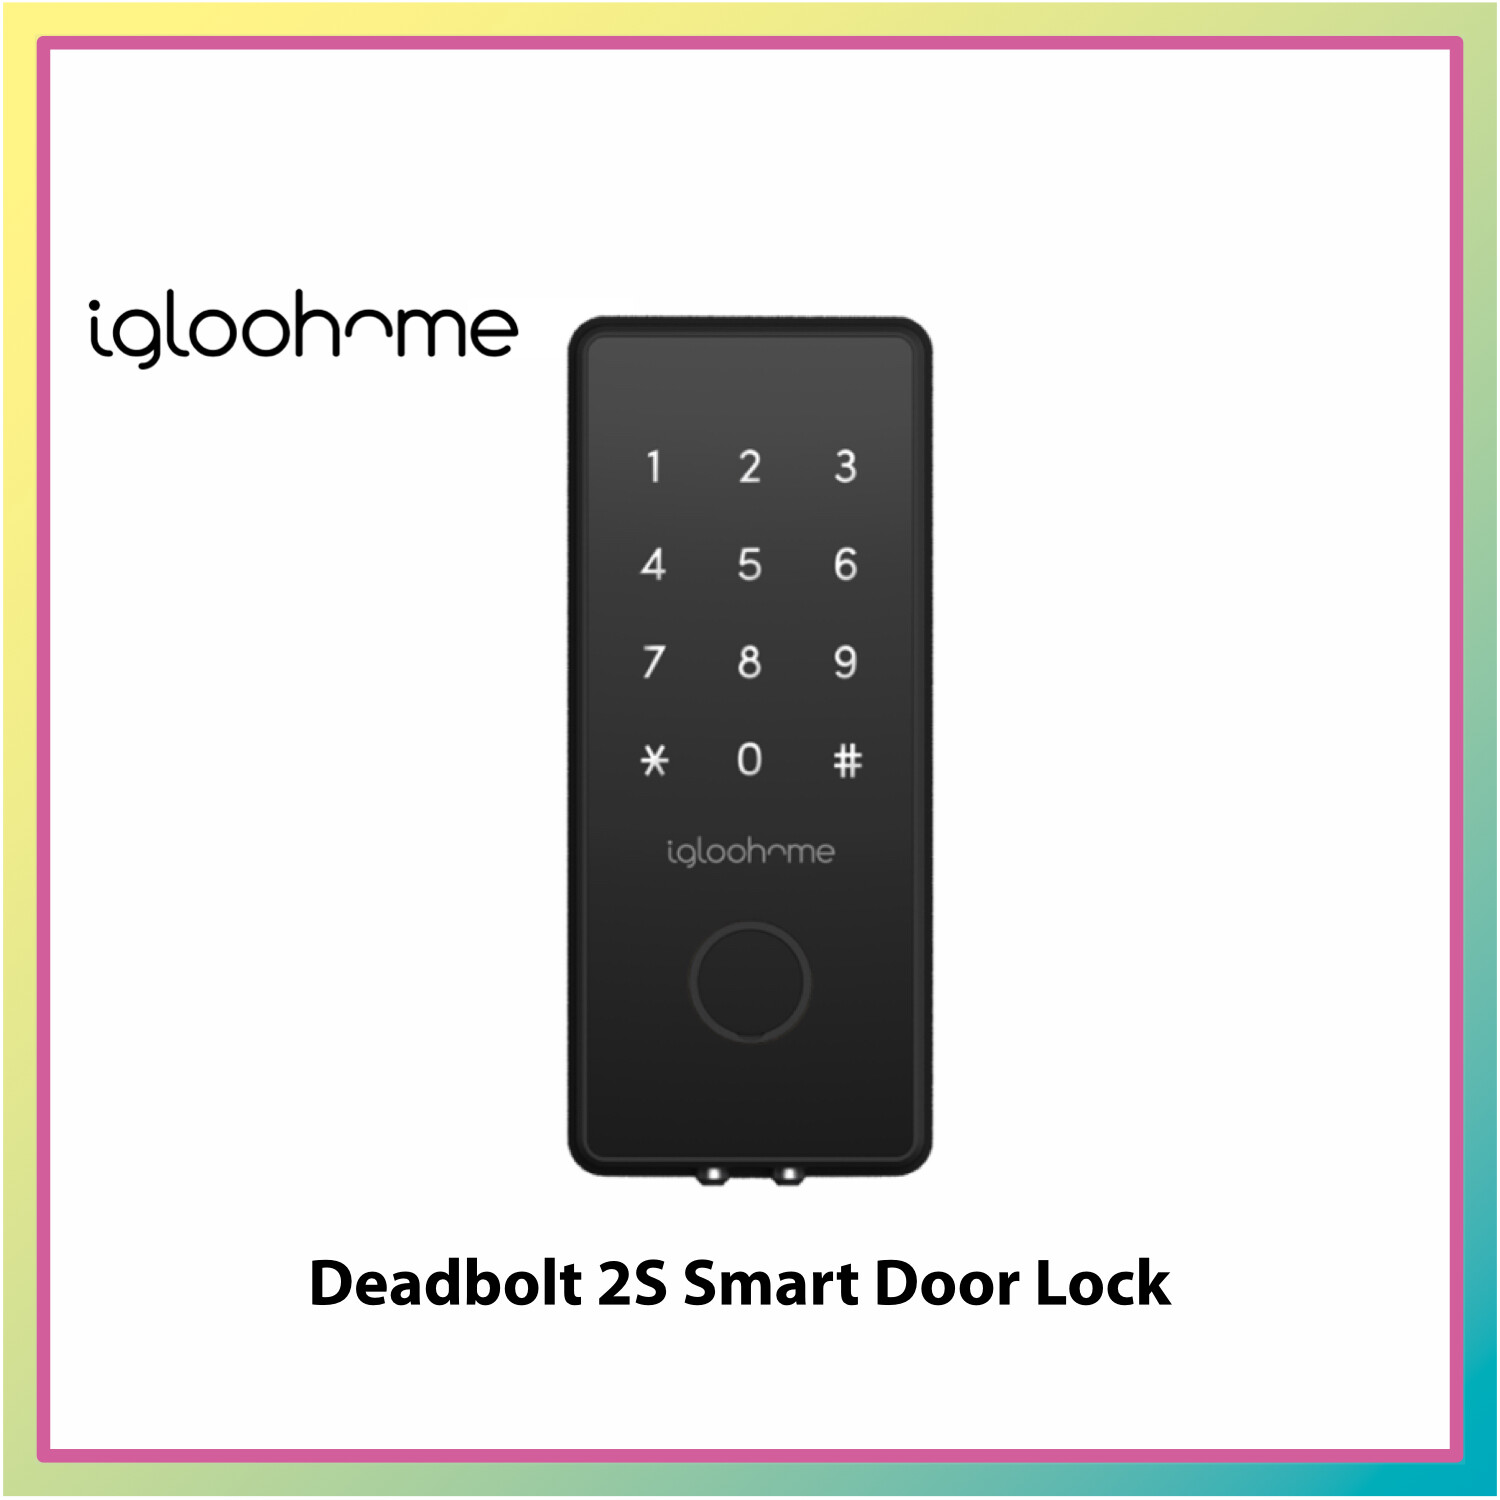 Igloohome Smart Deadbolt 2S ( Bluetooth Apps